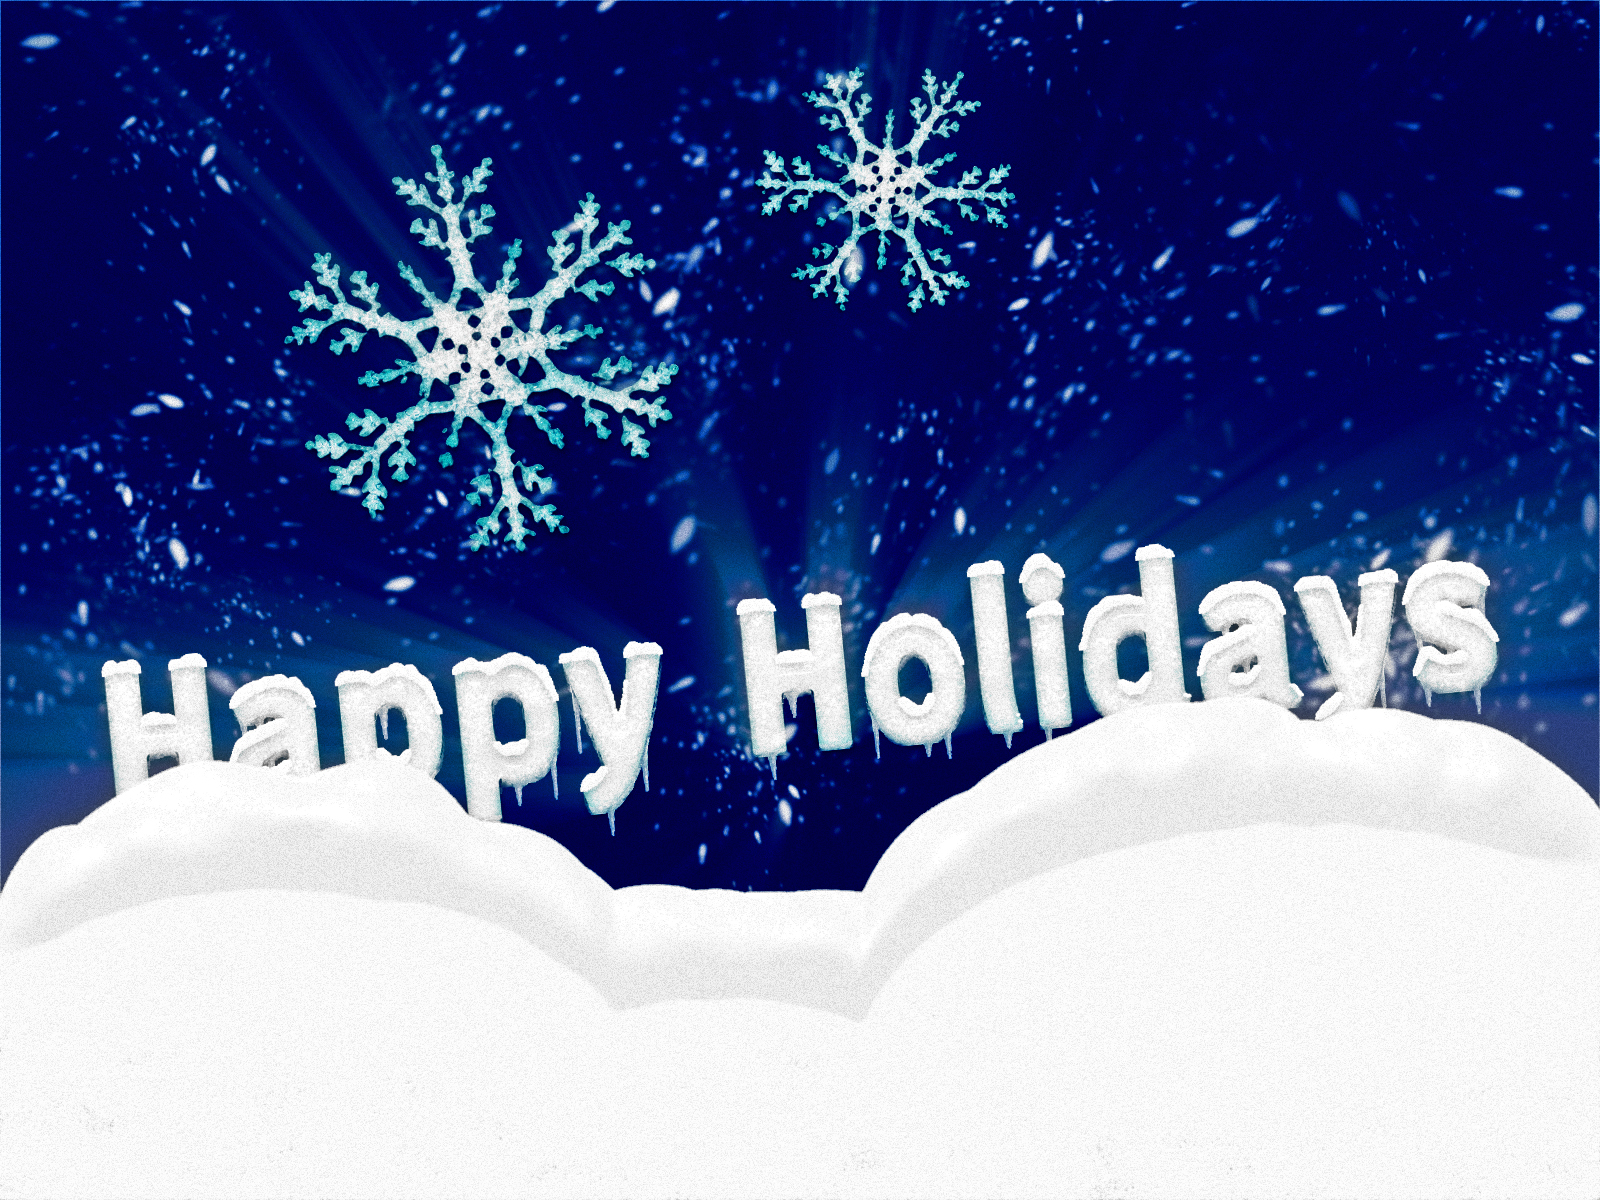 Happy-holidays-merry-christmas-light-snow-ts-celebrations-fireworks